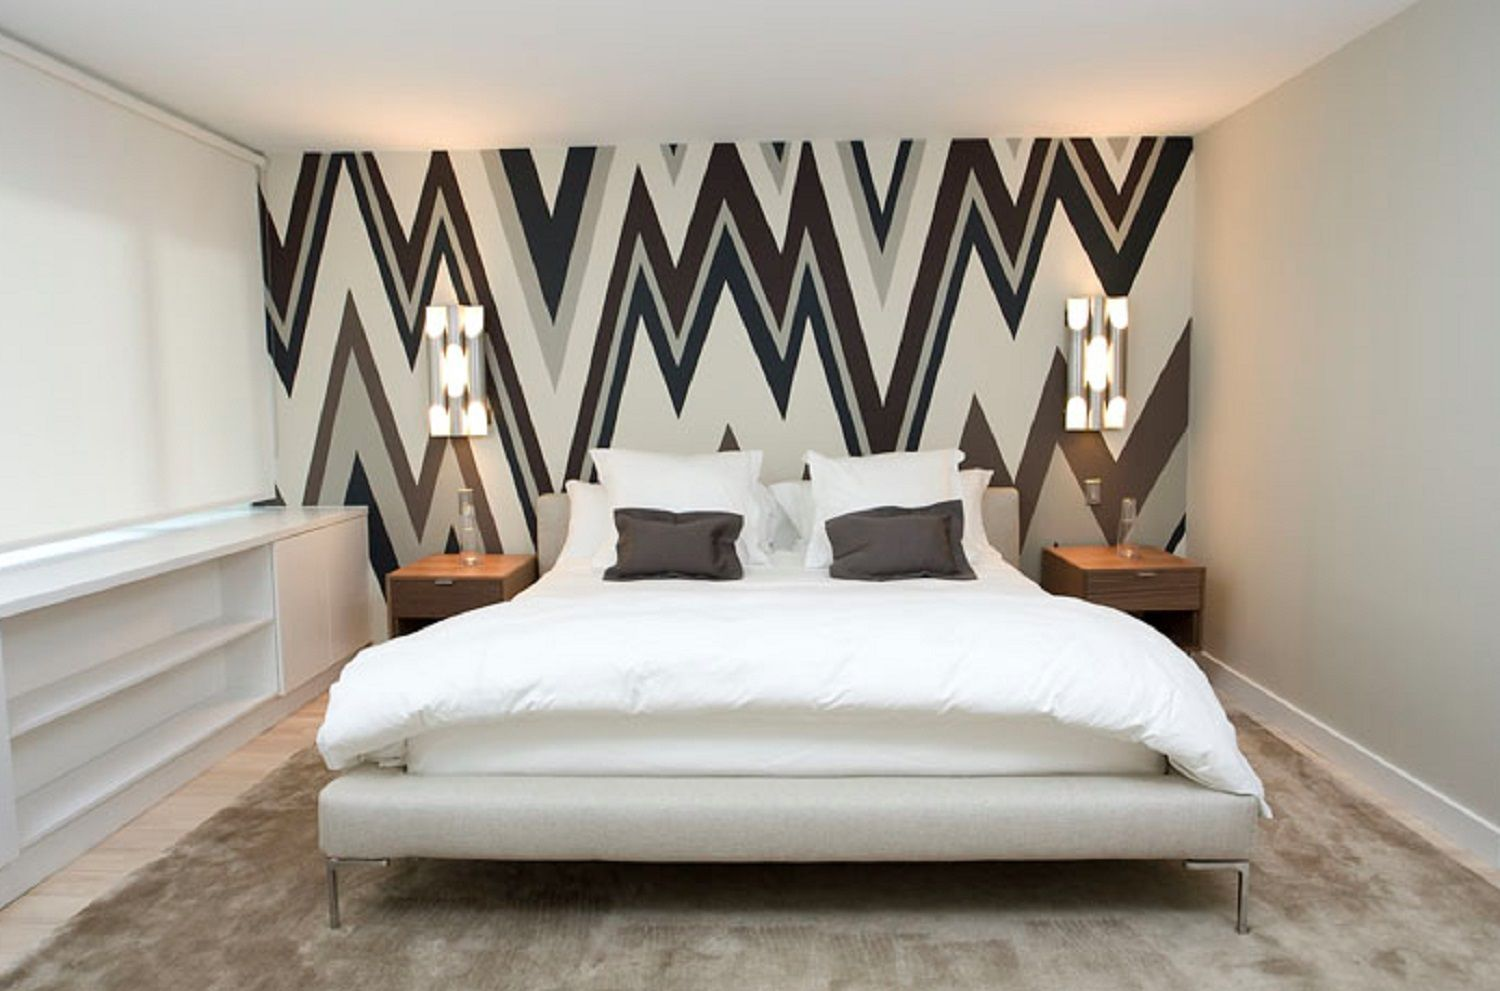 Zigzag pattern on a bedroom wall